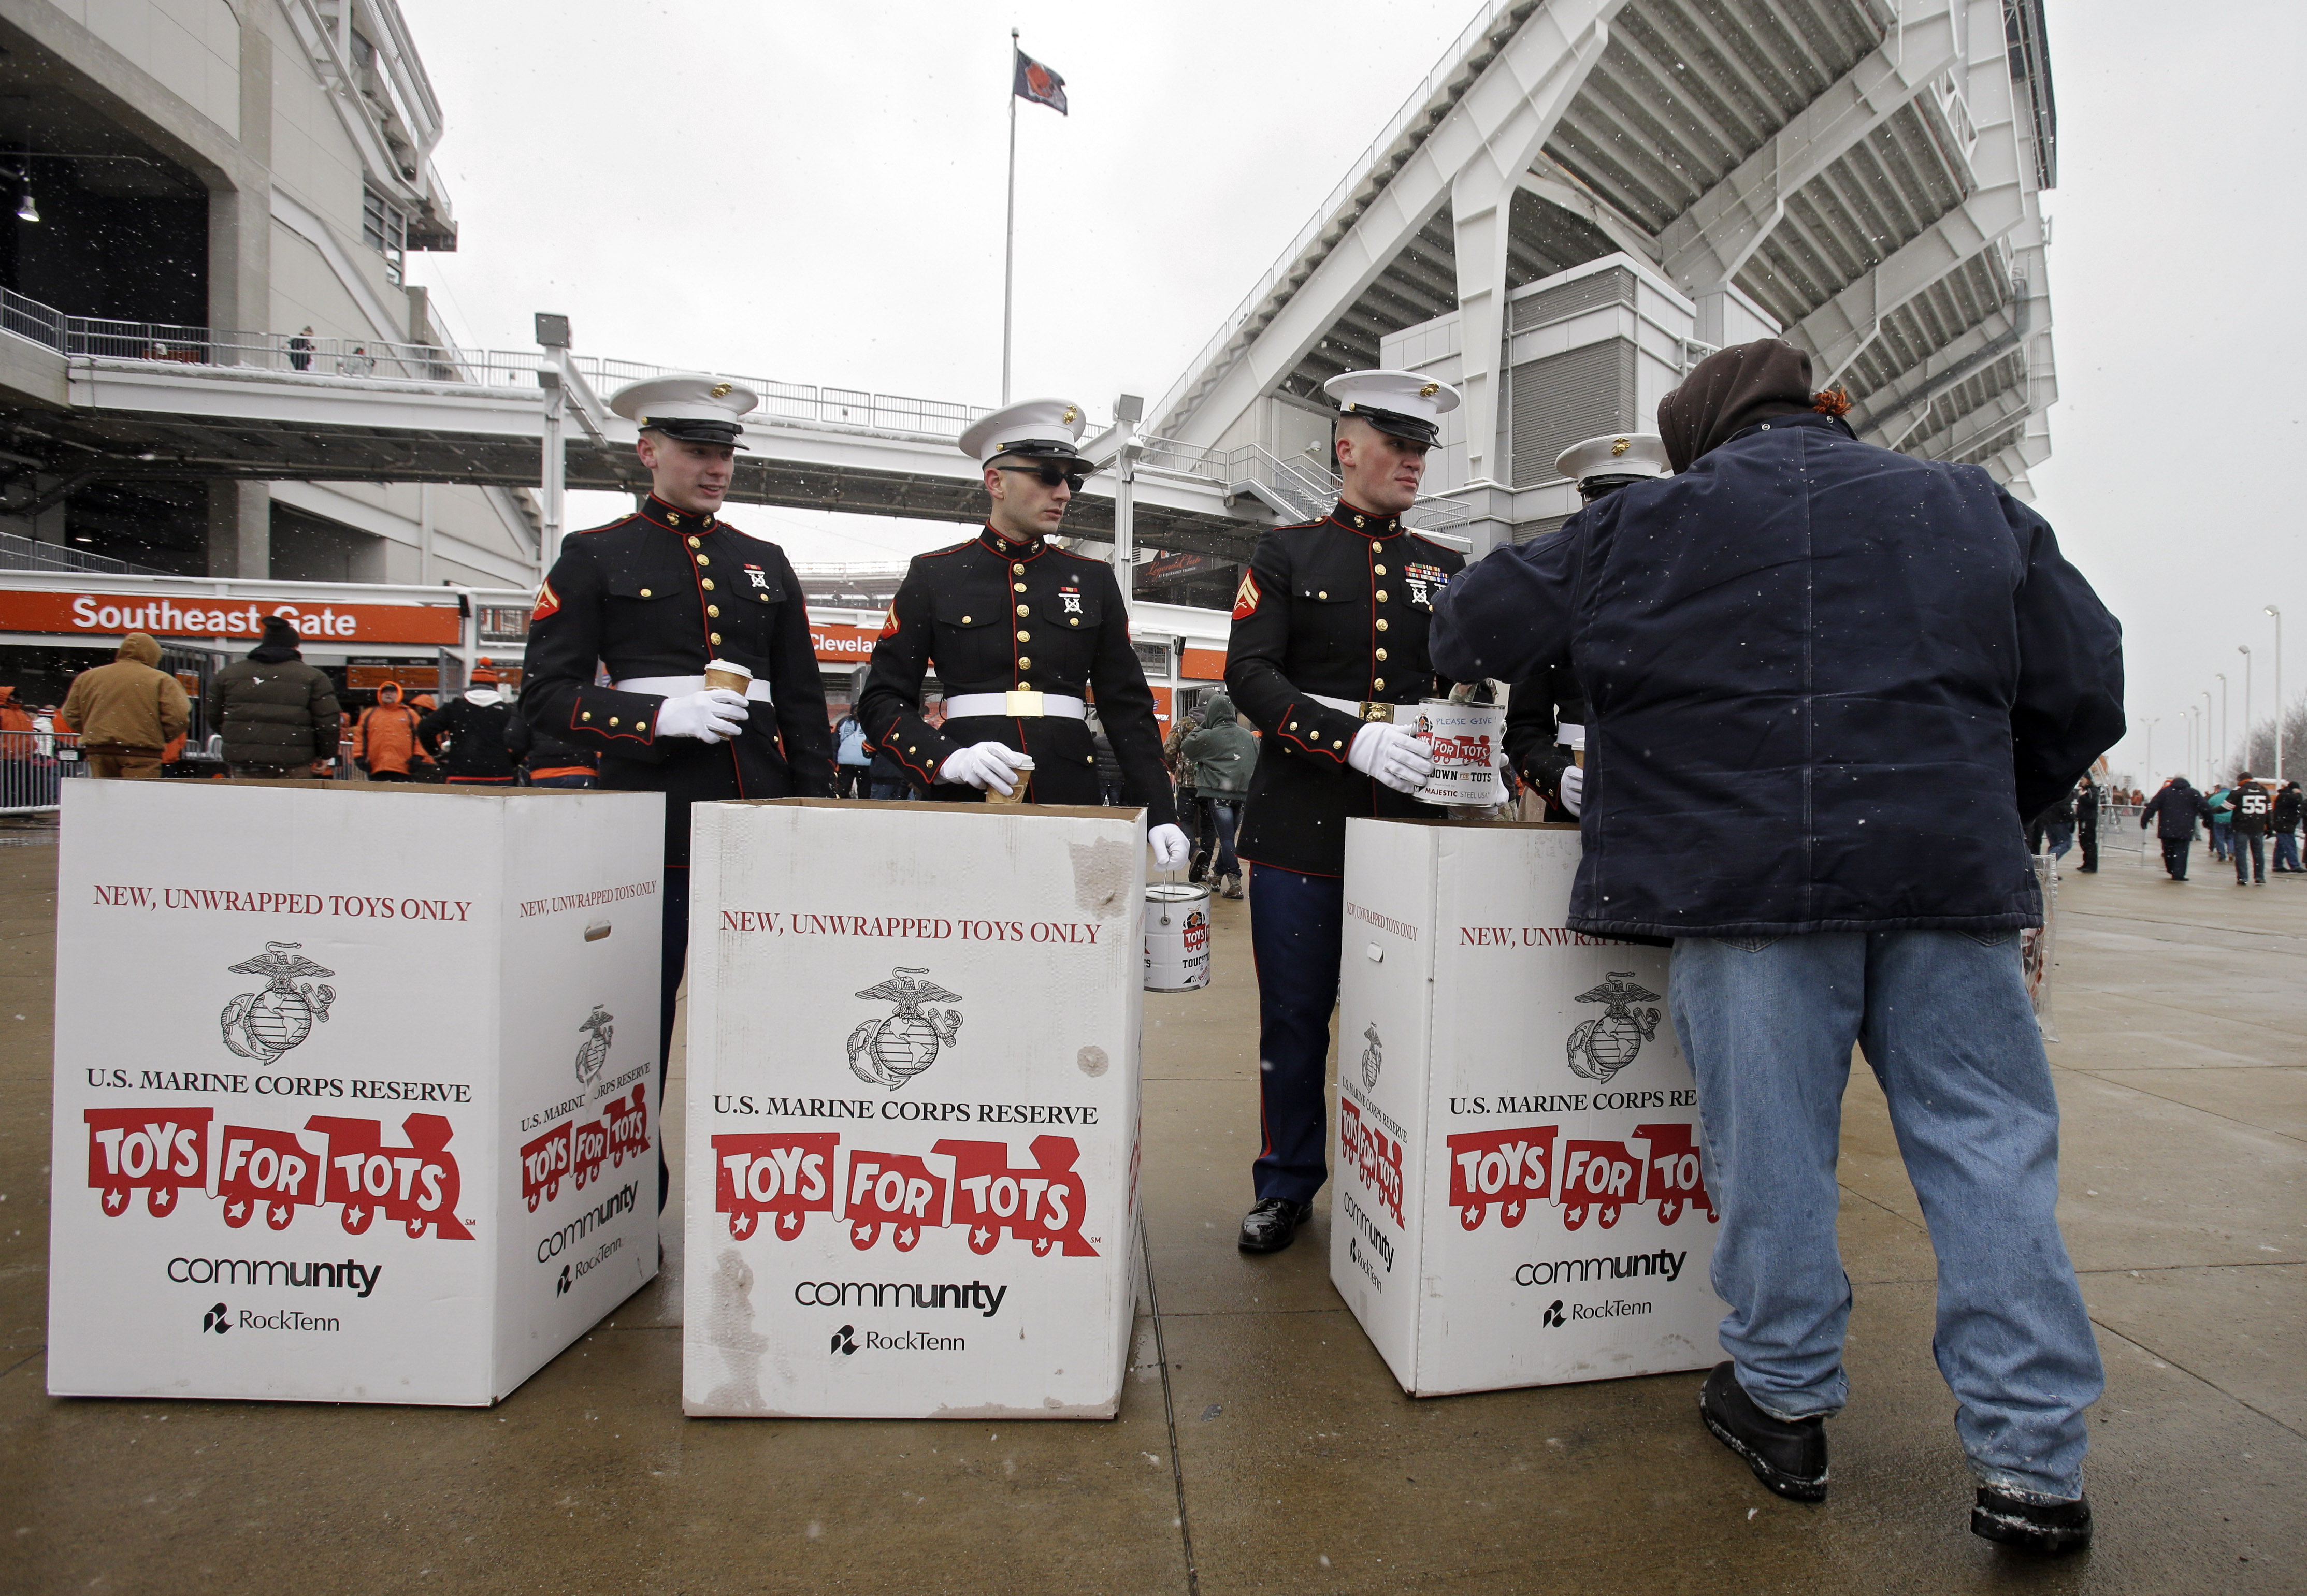 Marines collect toys and donations for the Toys for Tots campaign outside FirstEnergy Stadium before an NFL football game in Cleveland, Ohio on Dec. 15, 2013.